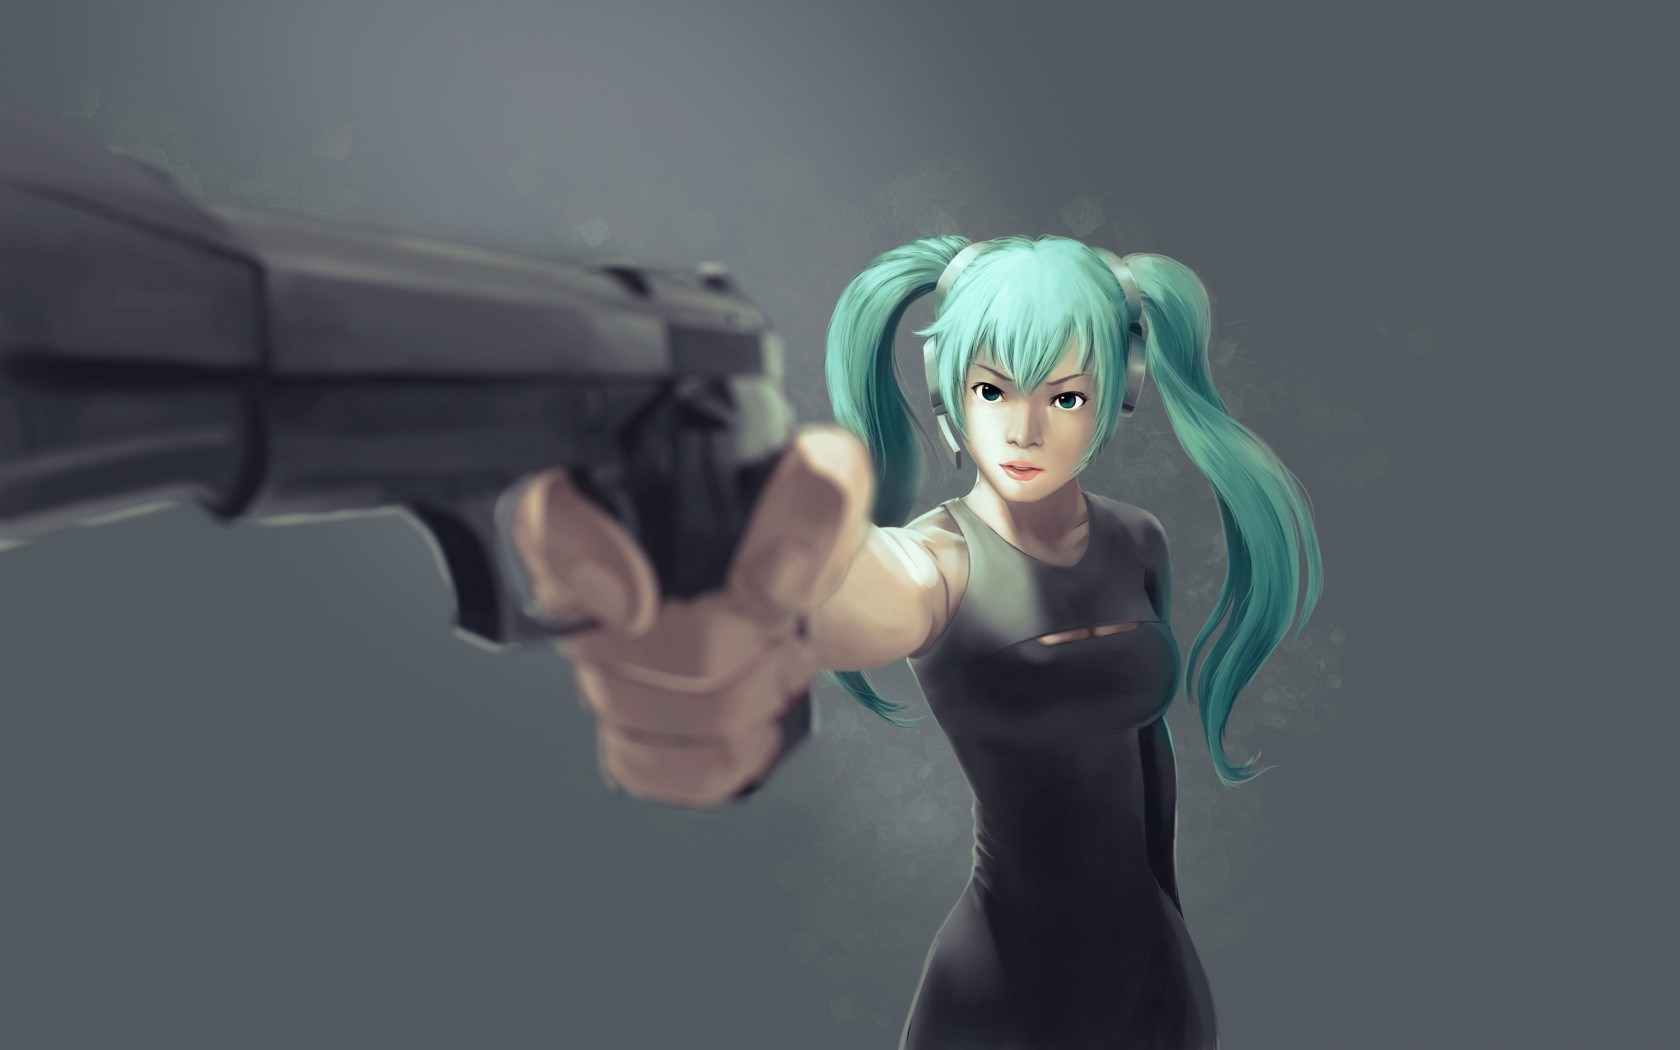 Art Girl Hatsune Miku Gun Anime